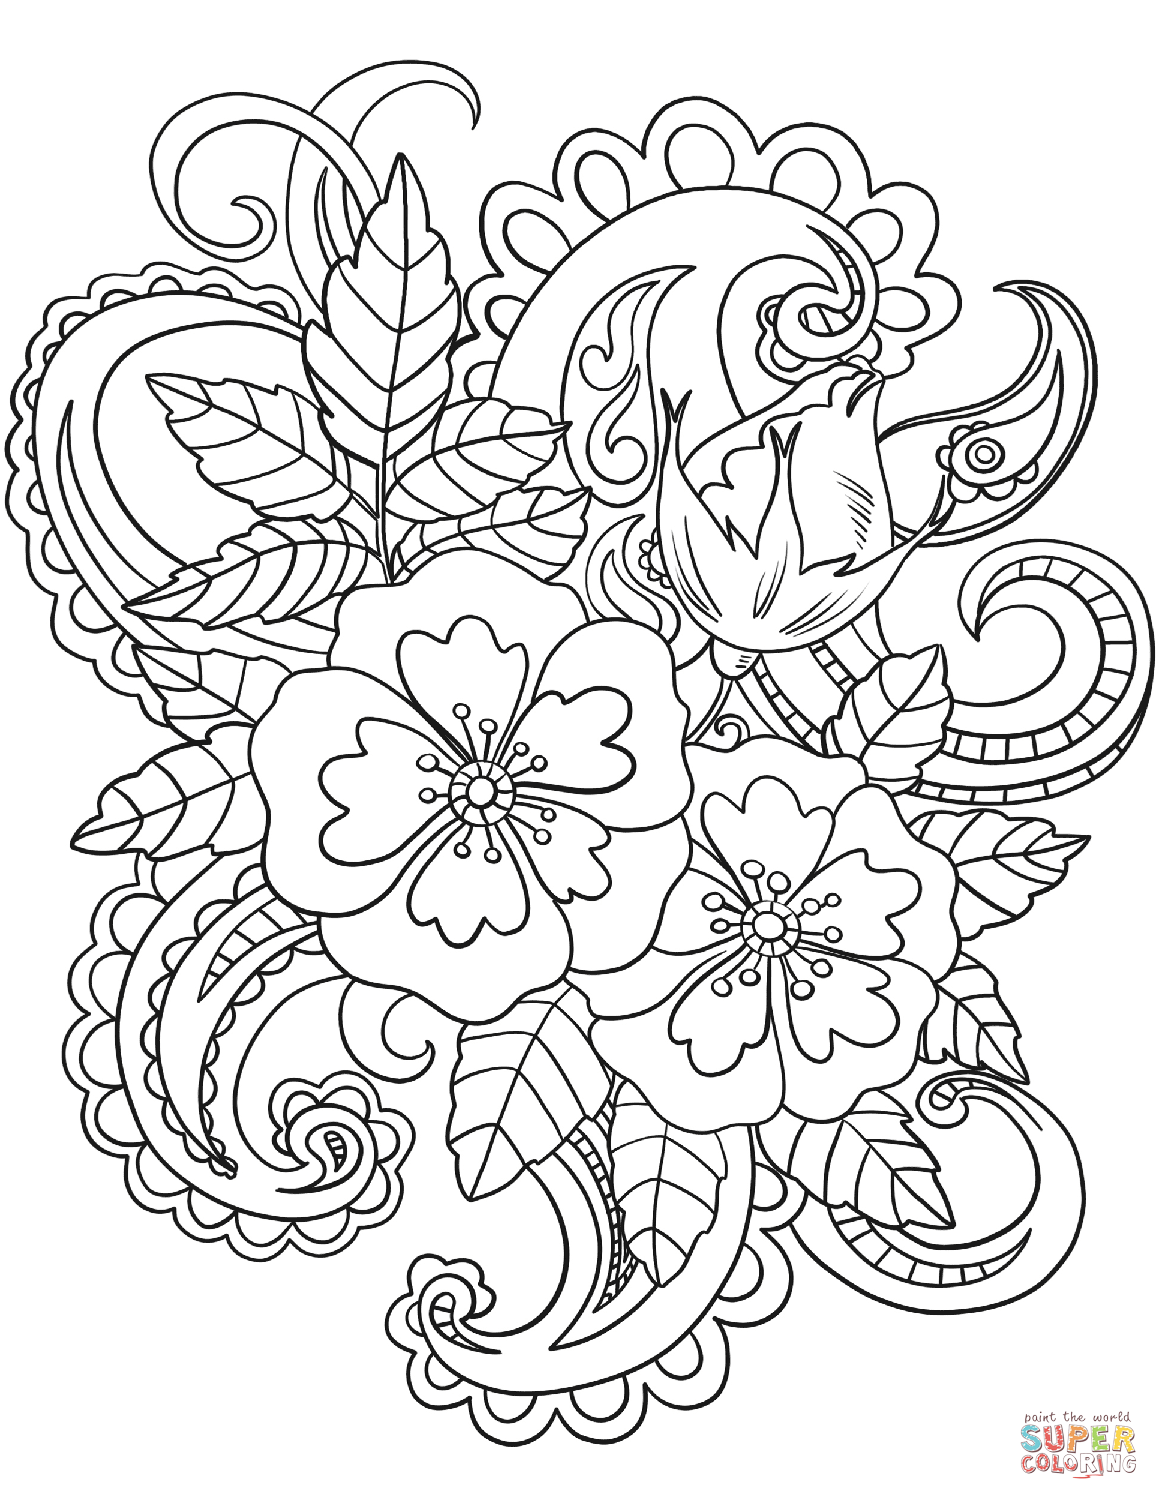 Simple Rainbow Coloring Page